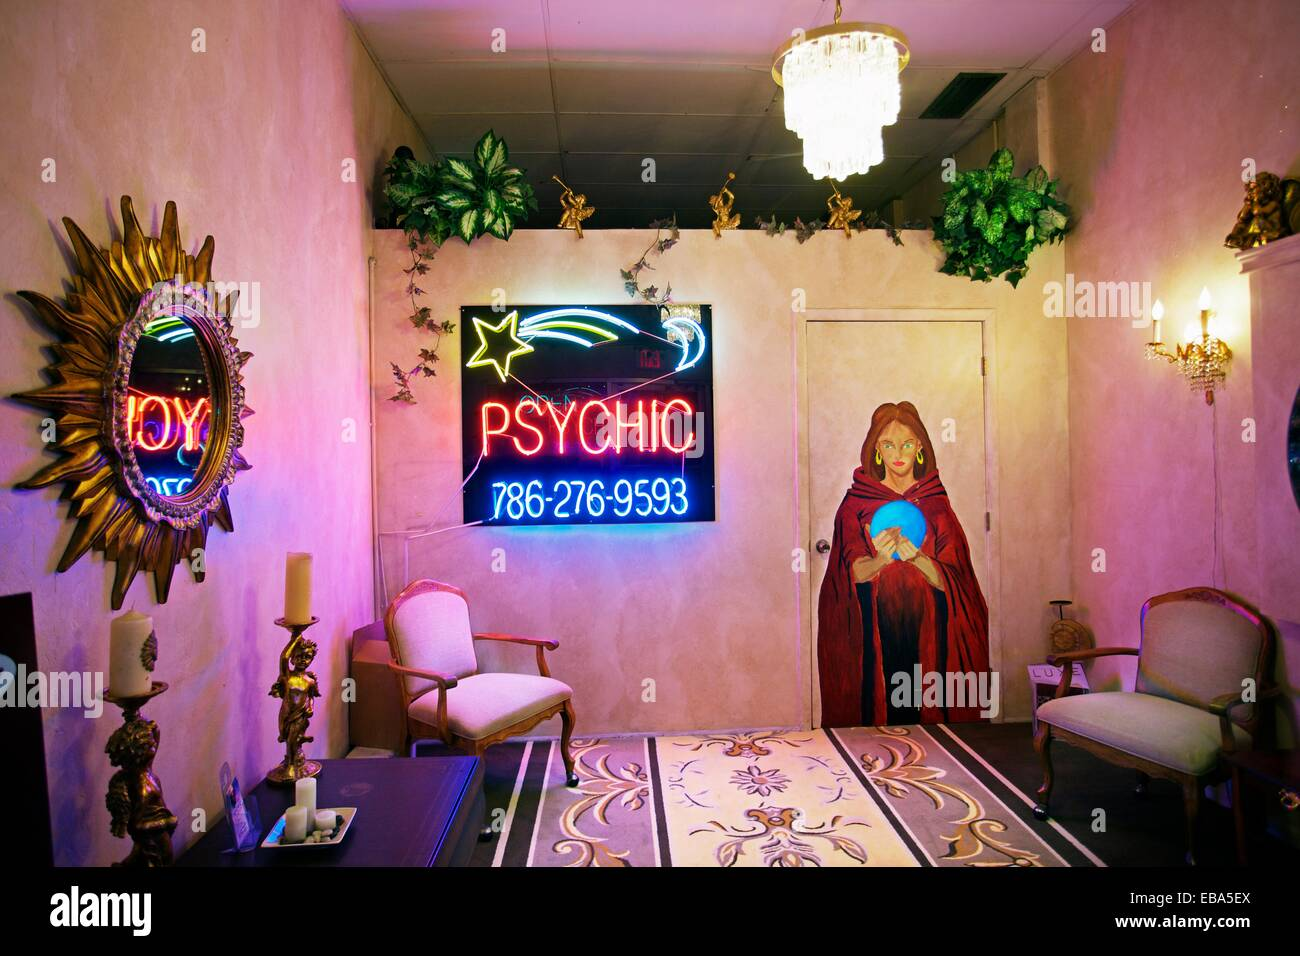 Fortune teller Psychic South Beach Miami Florida USA. - Stock Image